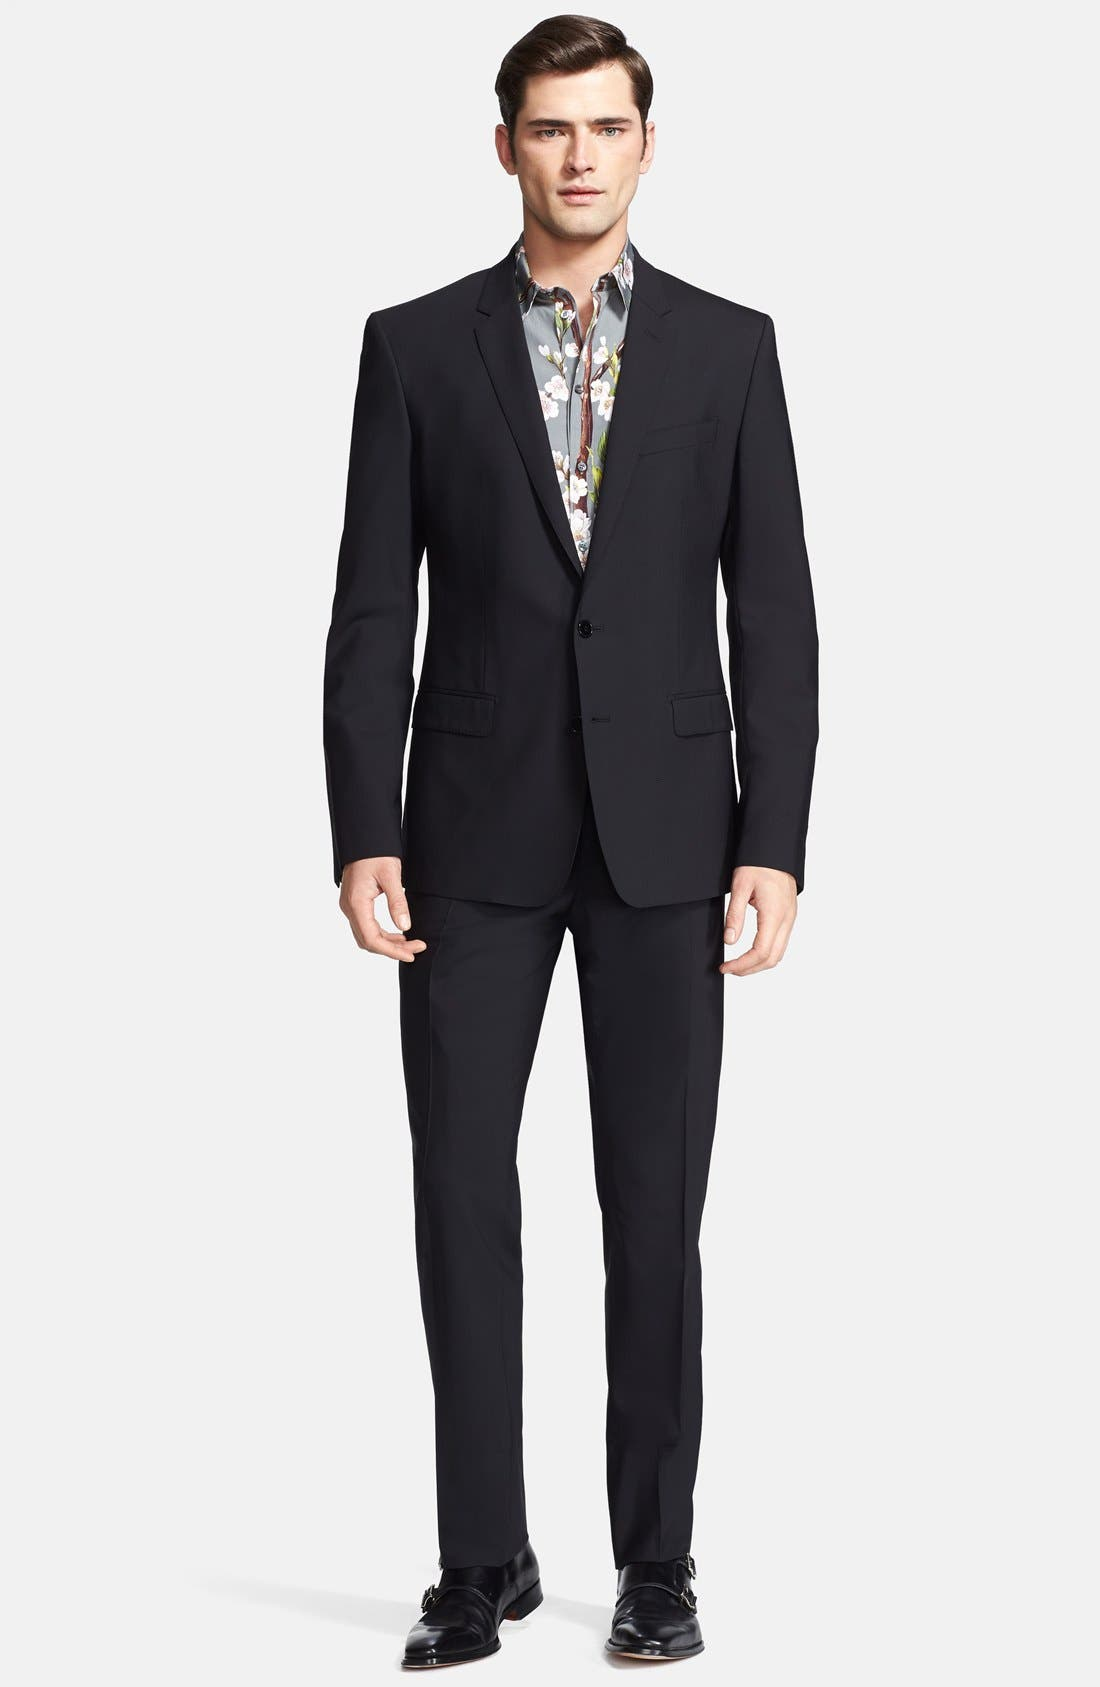 Main Image - Dolce&Gabbana 'Martini' Stretch Wool Suit